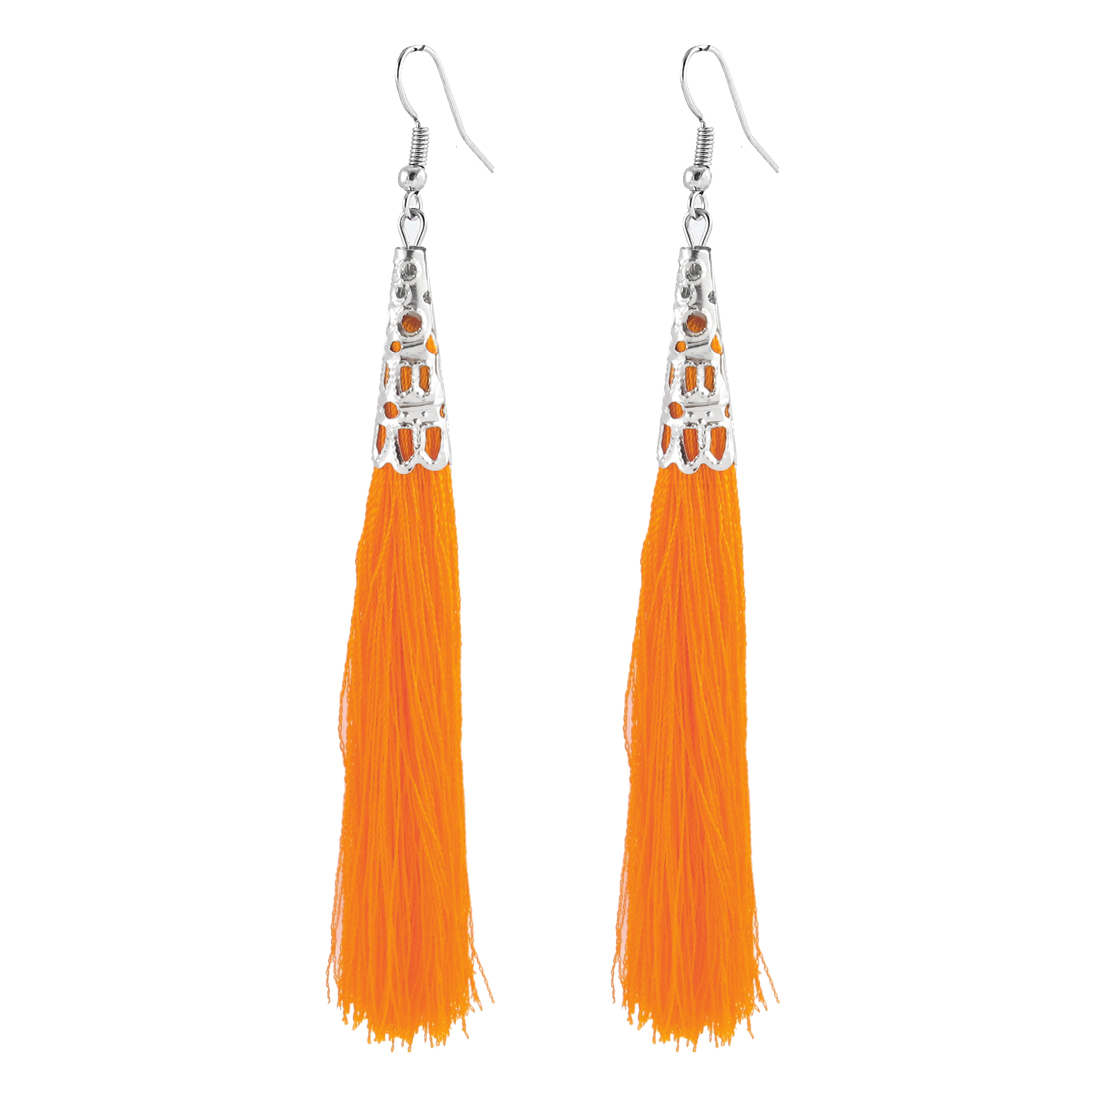 Hollow Bead Cap Cone Accent Fish Hook Hanging Tassel Earrings Dangle Pair Orange